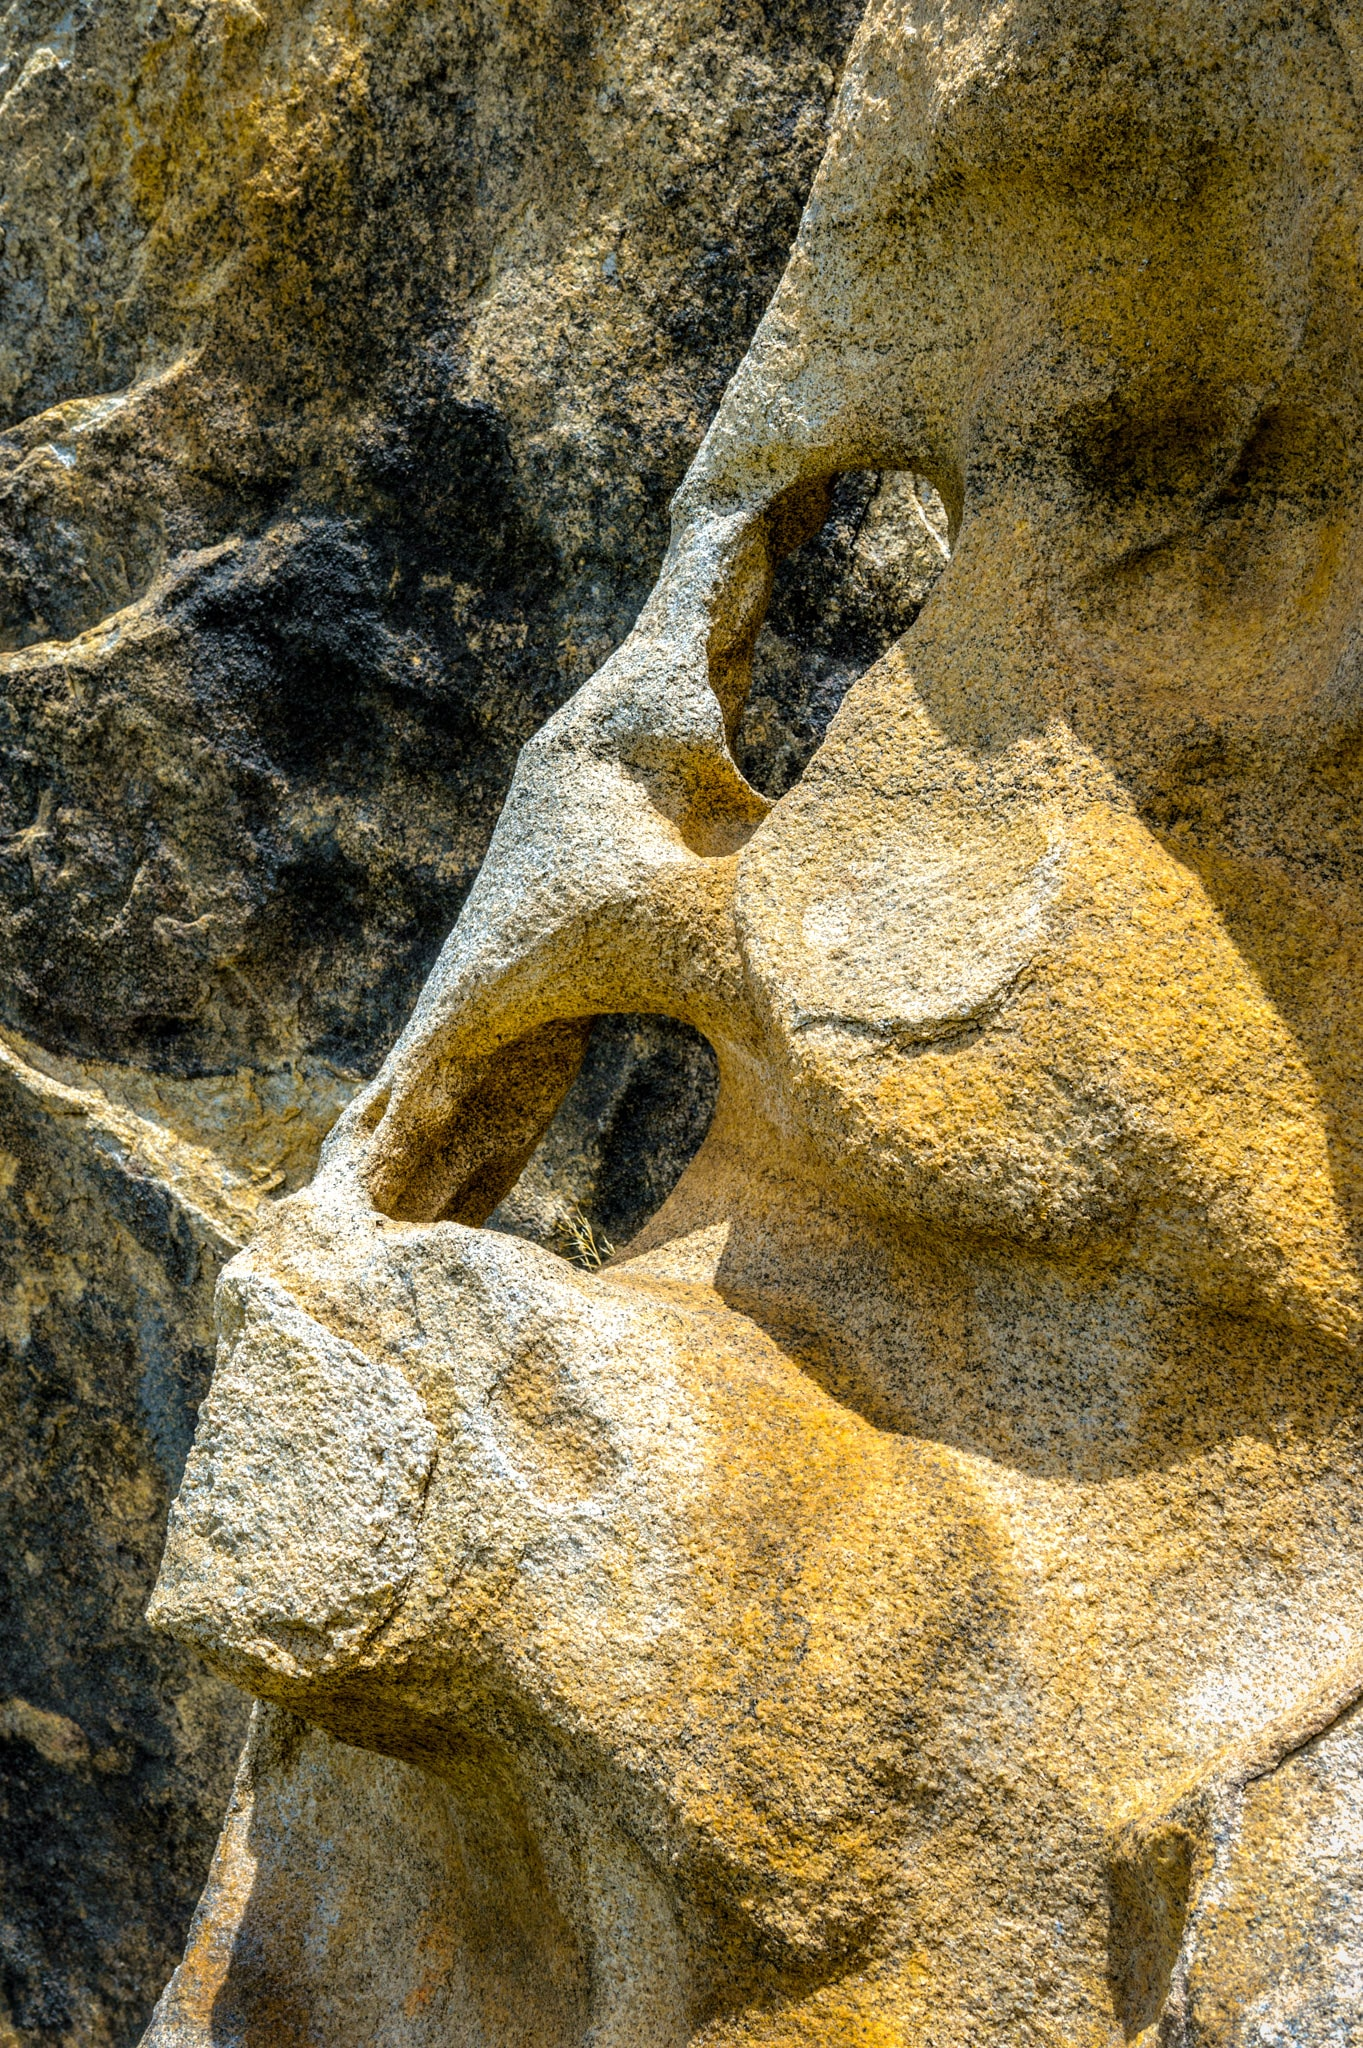 Darker rock shows through eroded holes in lighter granite in City of Rocks National Reserve inear Almo, Idaho.